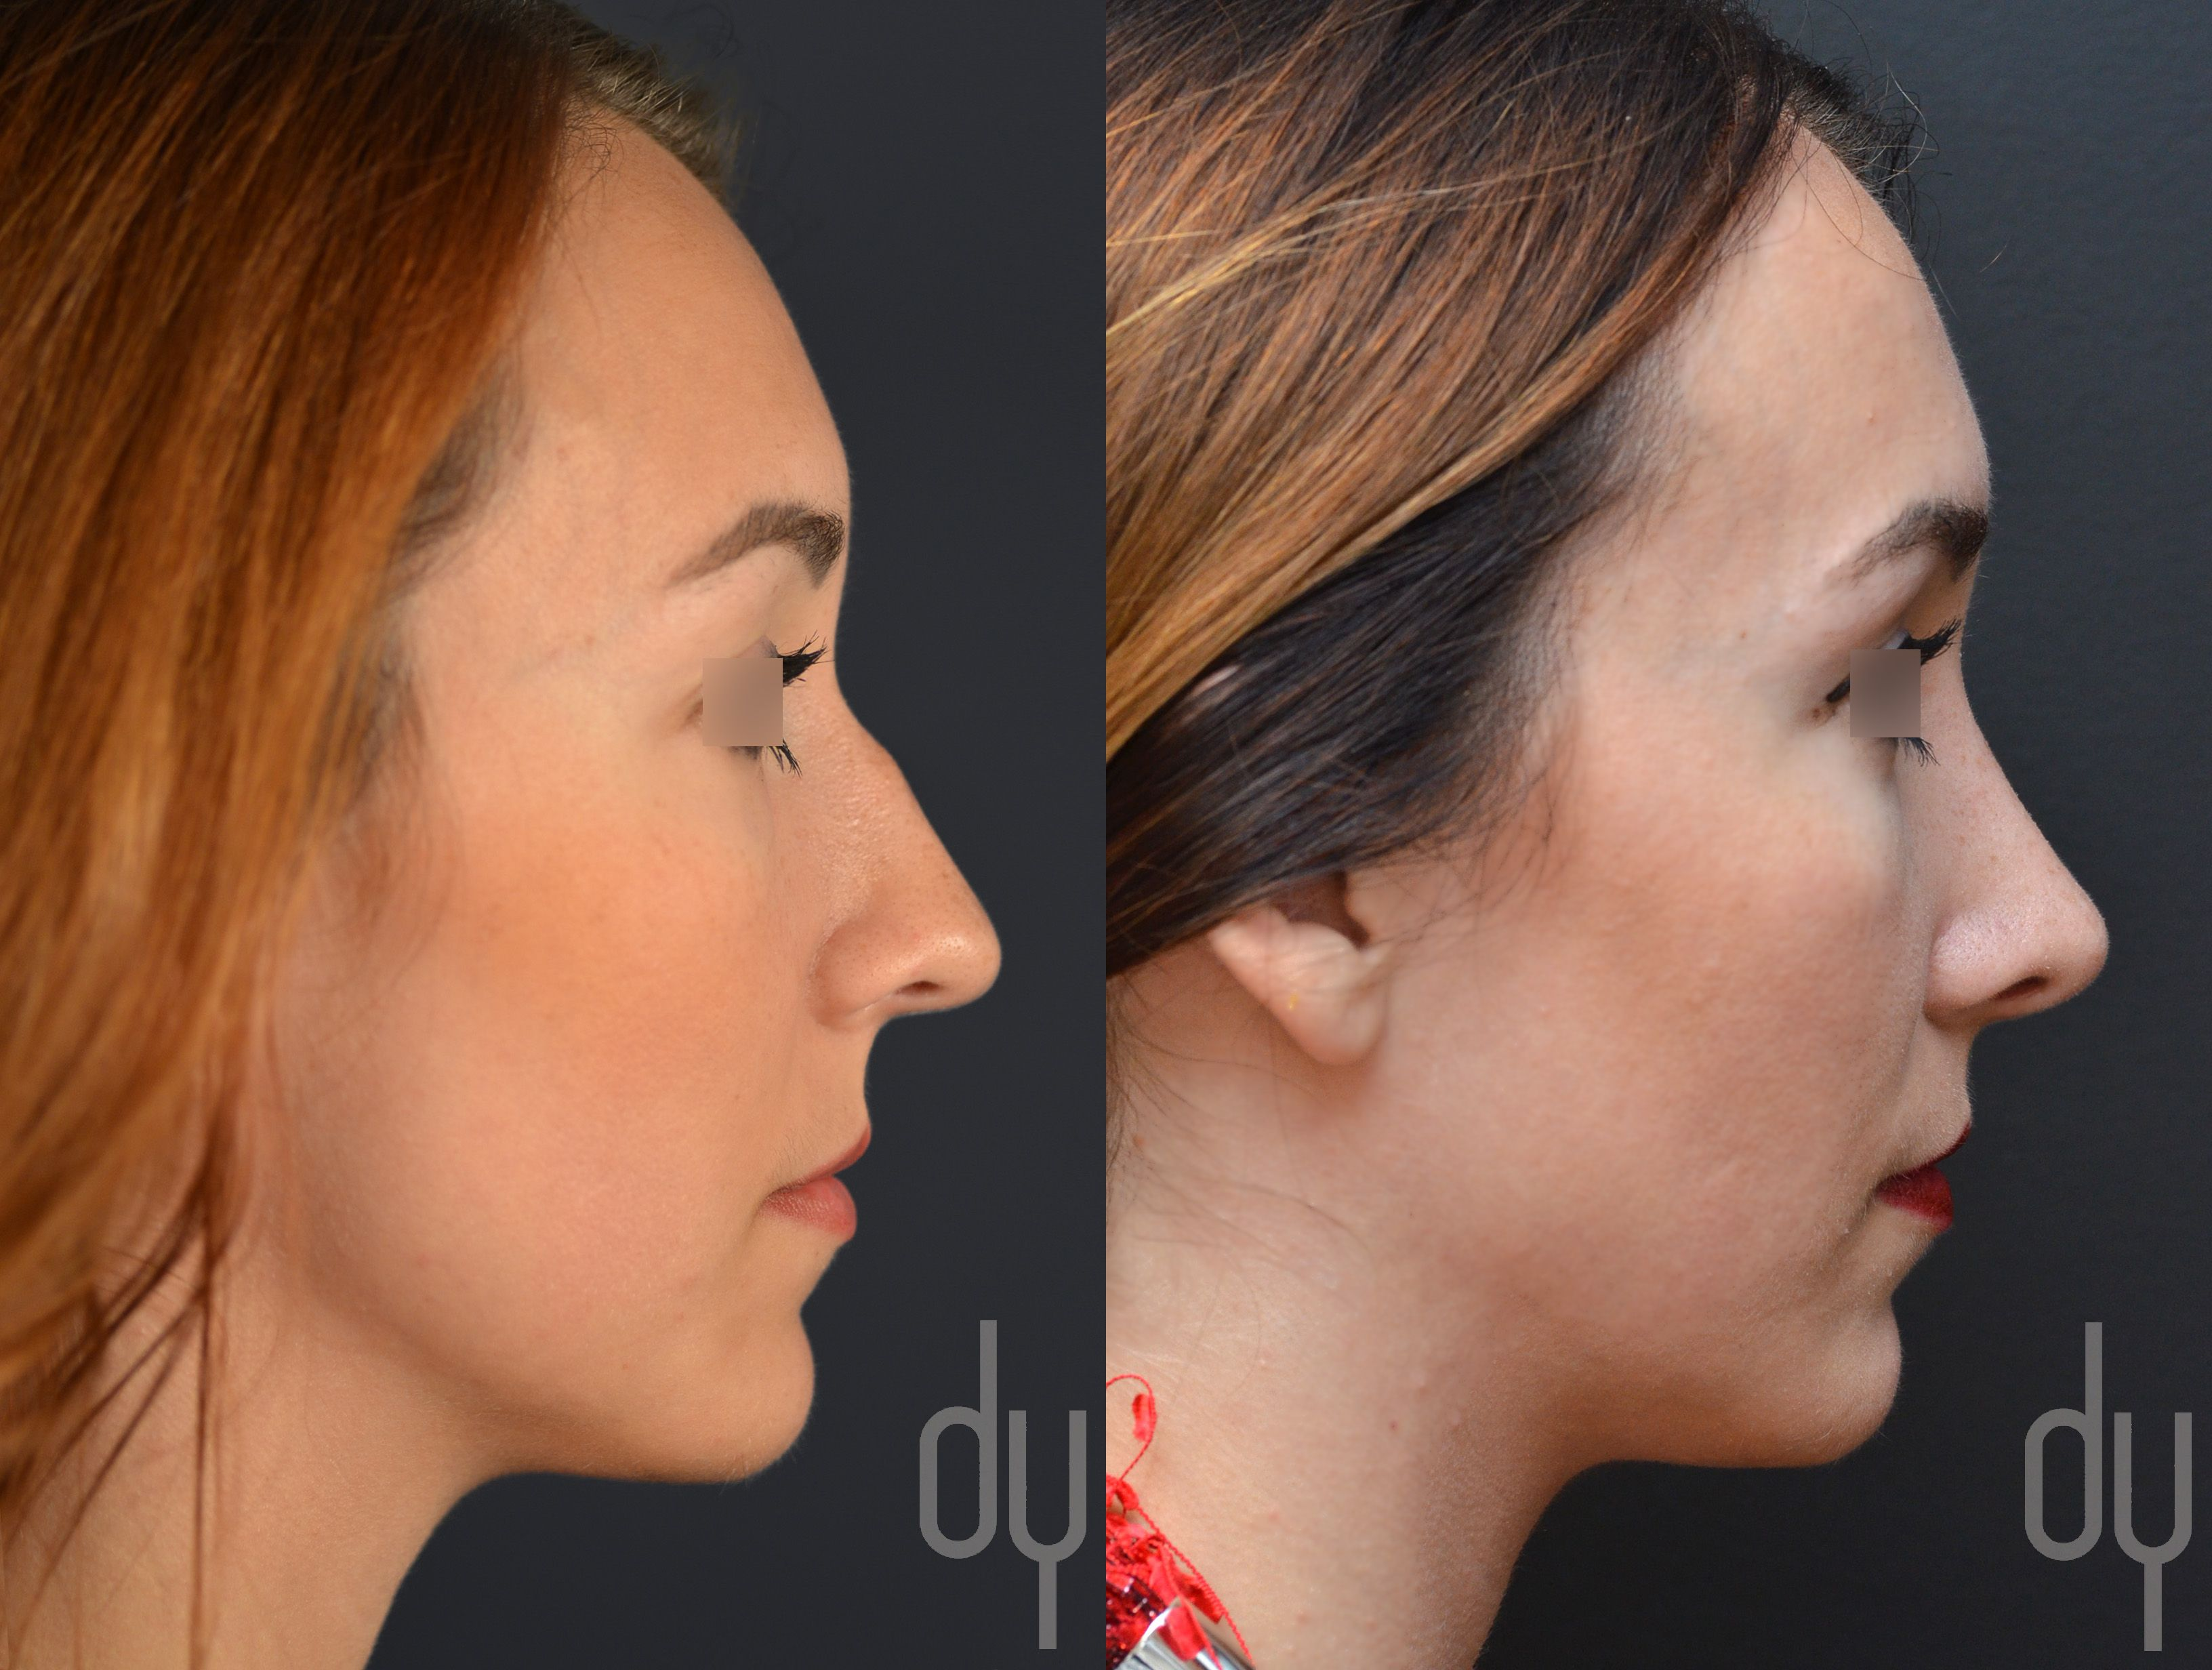 Before And After Primary Open Rhinoplasty And Septoplasty With Dorsal Hump Reduction And Tip Refi Rhinoplasty Nose Plastic Surgery Rhinoplasty Before And After